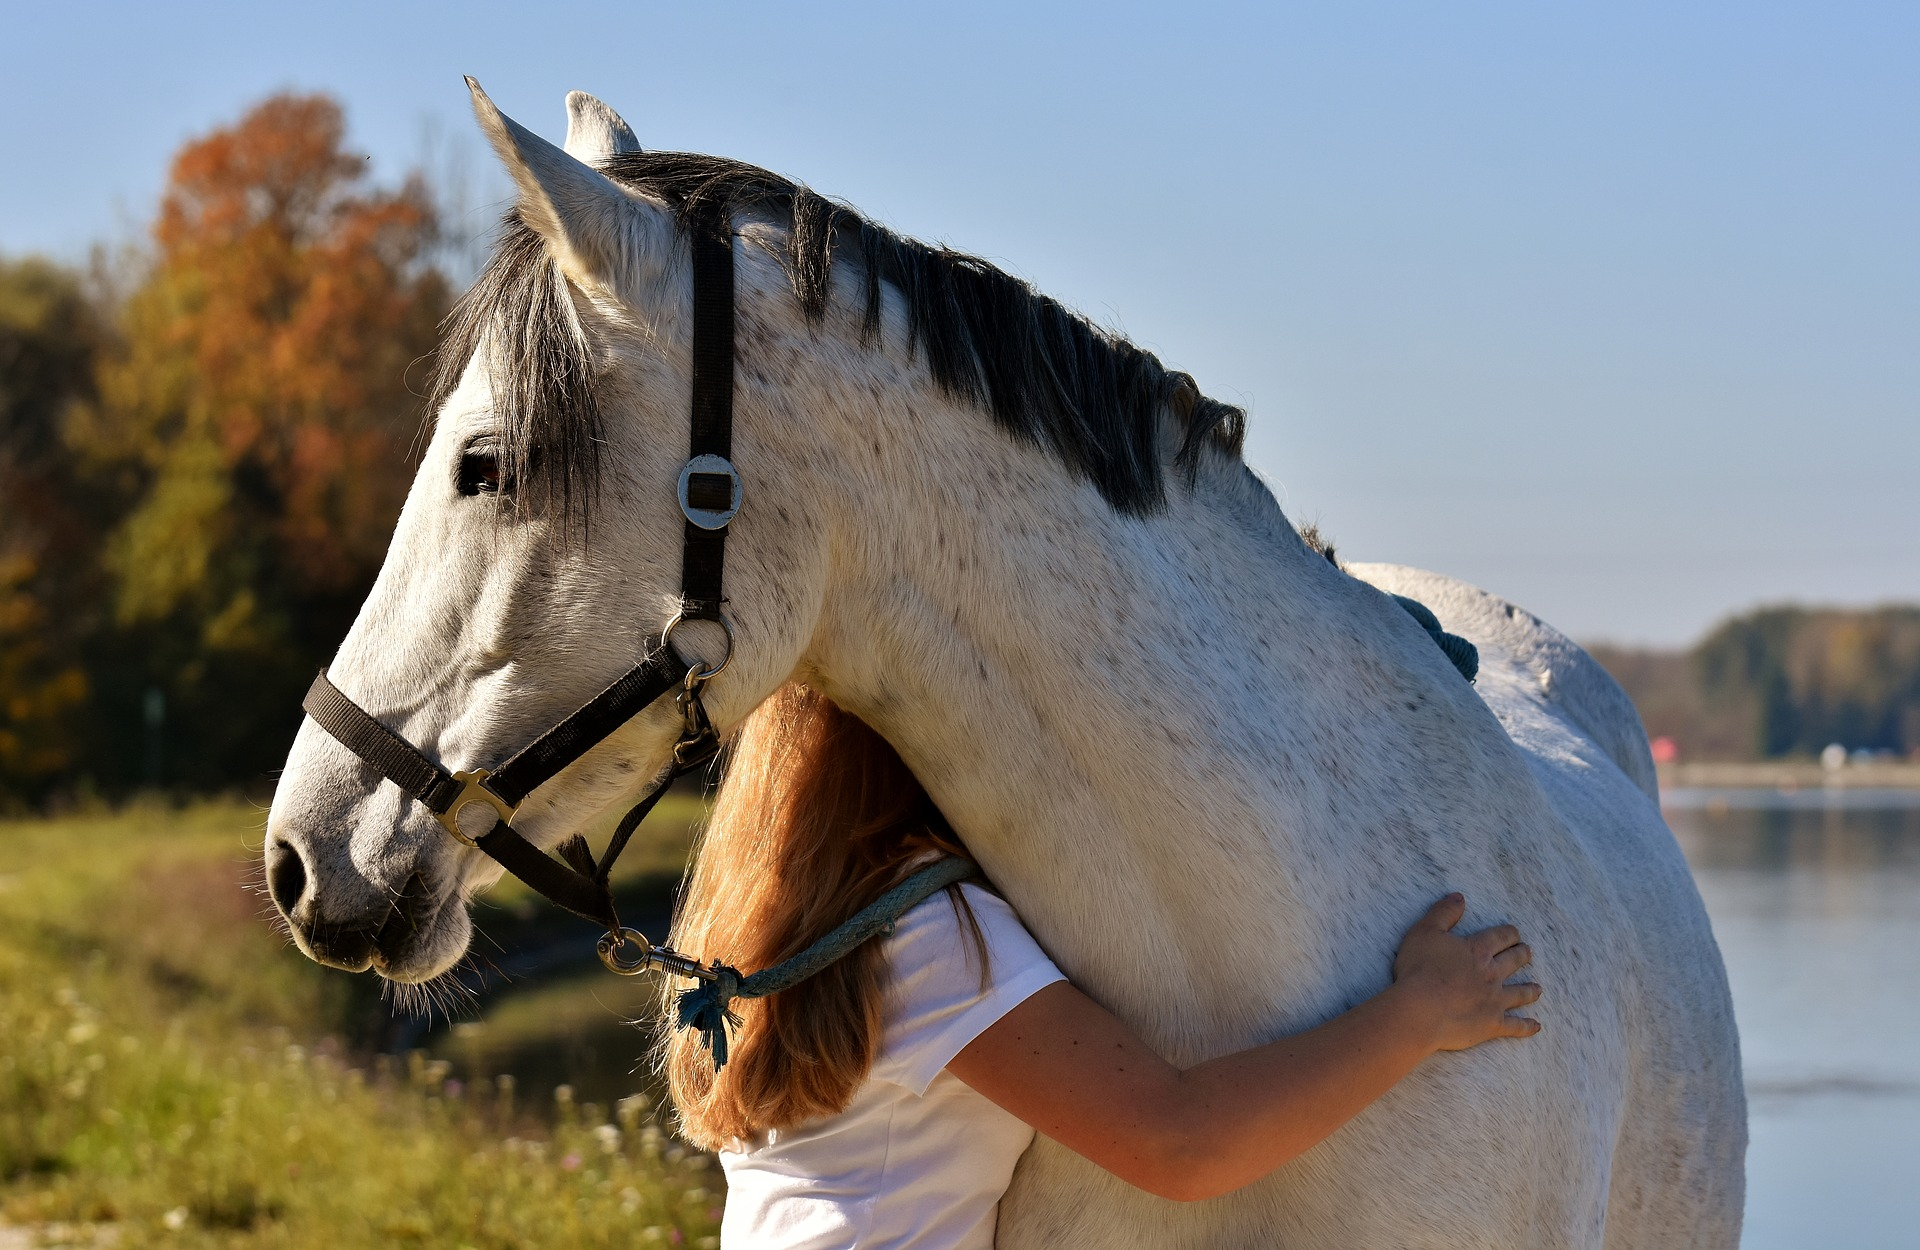 Keep Calm Ride On Meet The 5 Calmest Horse Breeds